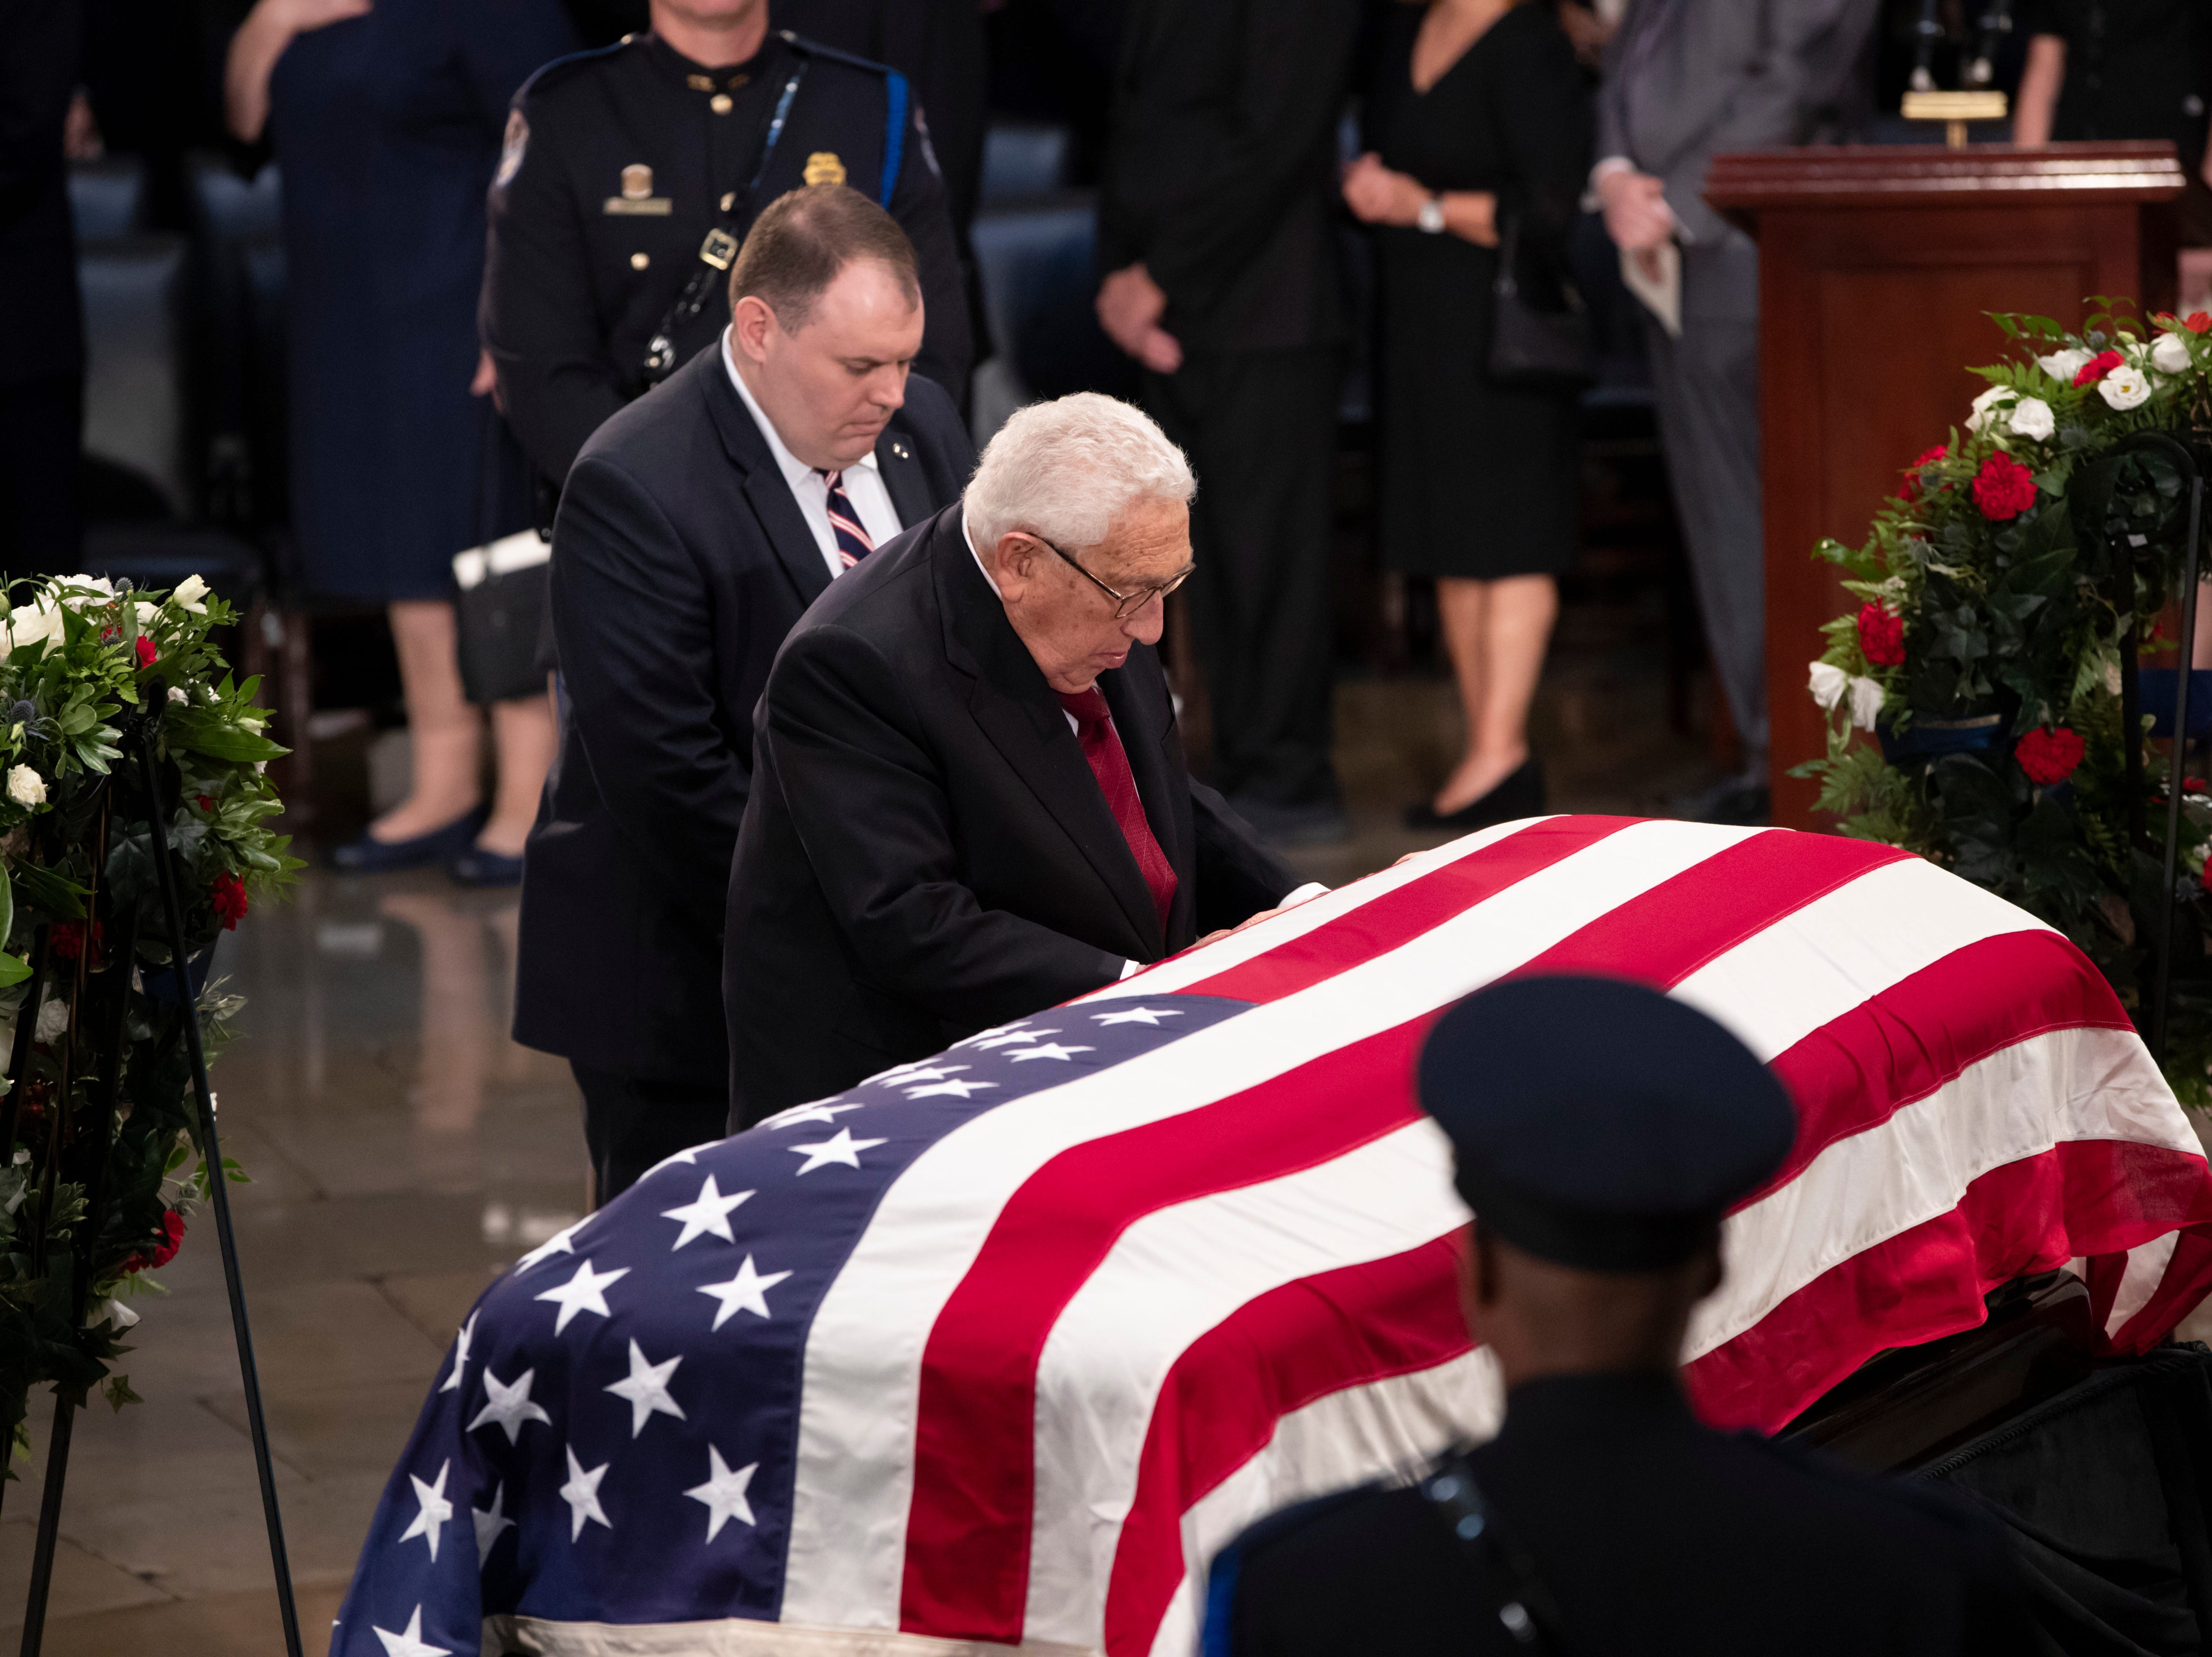 Former Secretary of State Henry Kissinger pays his respects at the flag-draped casket of Sen. John McCain of Arizona, who lived and worked in Congress over four decades, in the U.S. Capitol rotunda, Friday, Aug. 31, 2018, in Washington. McCain was a six-term senator, a former Republican nominee for president, and a Navy pilot who served in Vietnam, where he endured five-and-a-half years as a prisoner of war. He died Aug. 25 from brain cancer at age 81. (AP Photo/J. Scott Applewhite)